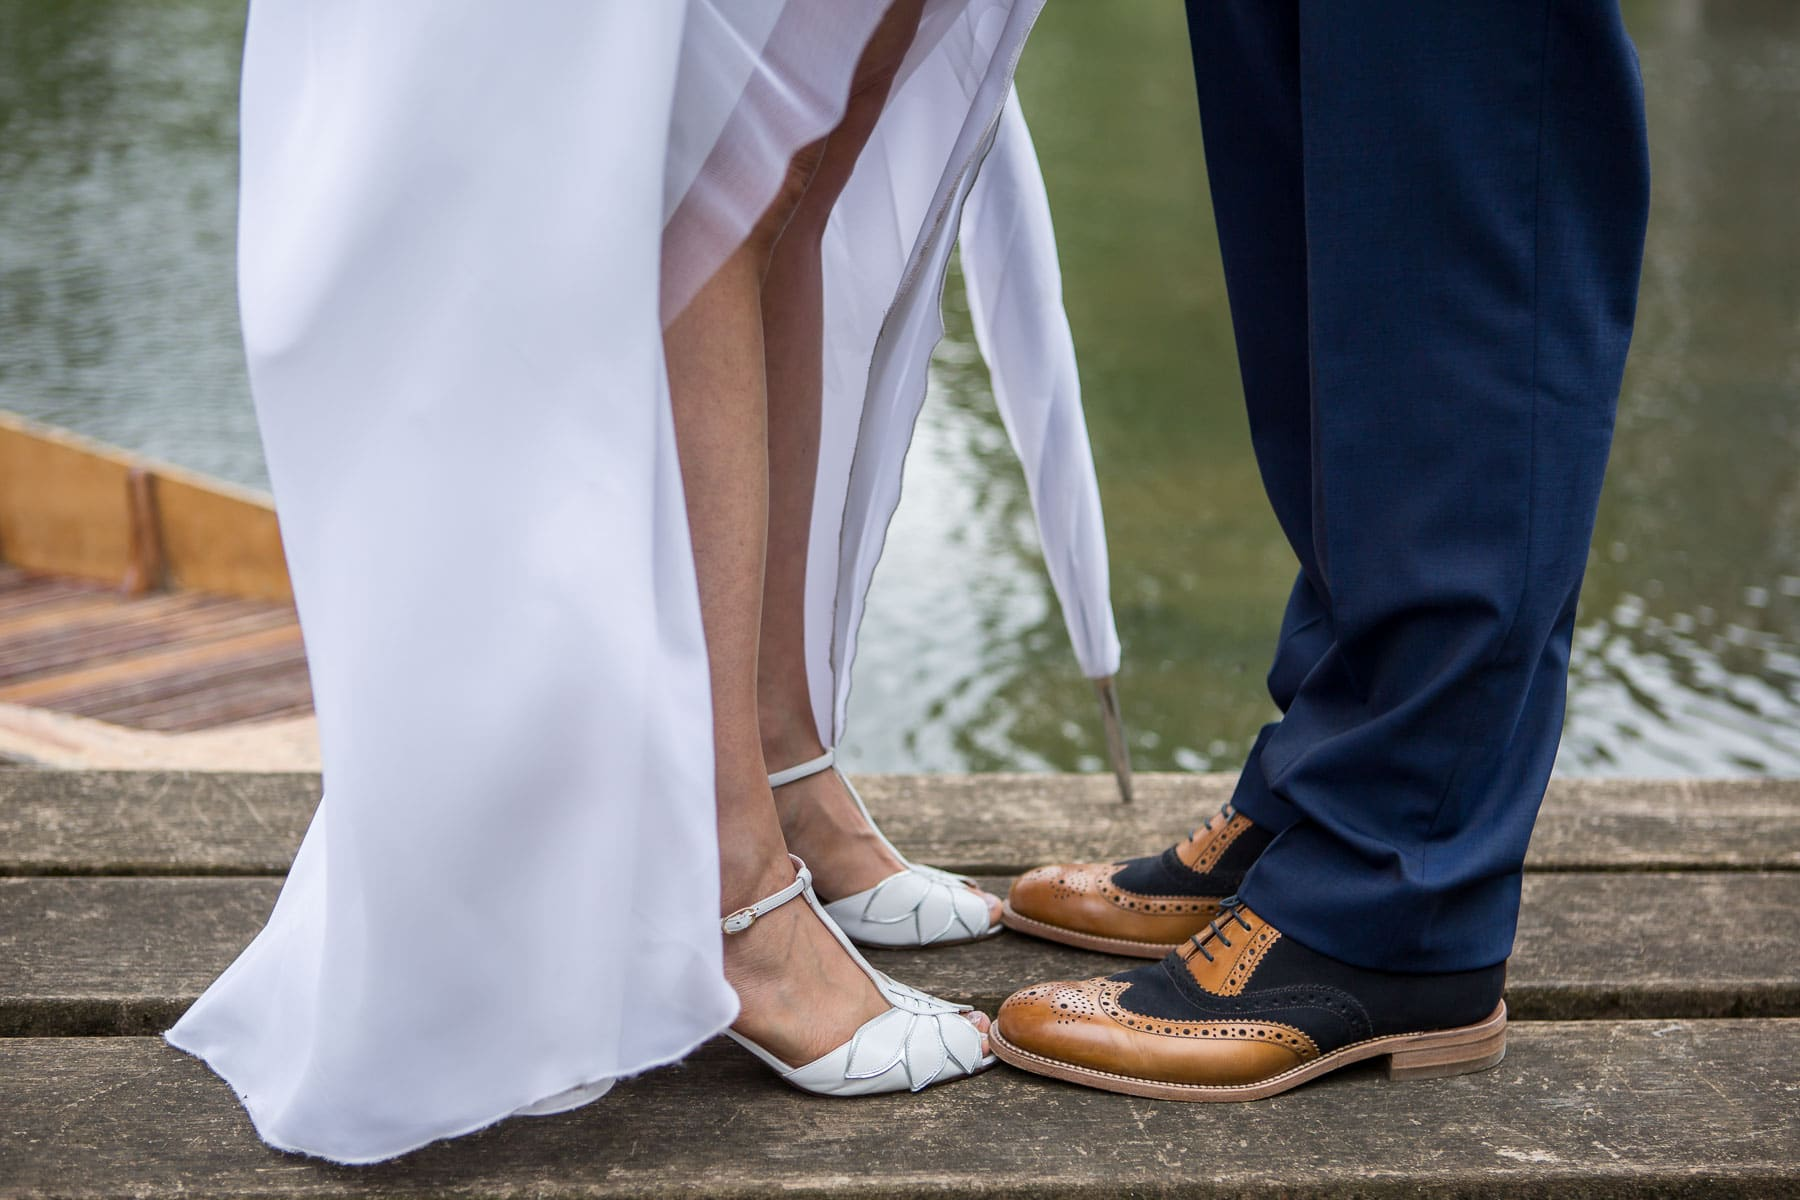 Shot of bride and groom's shoes while standing at the water's edge